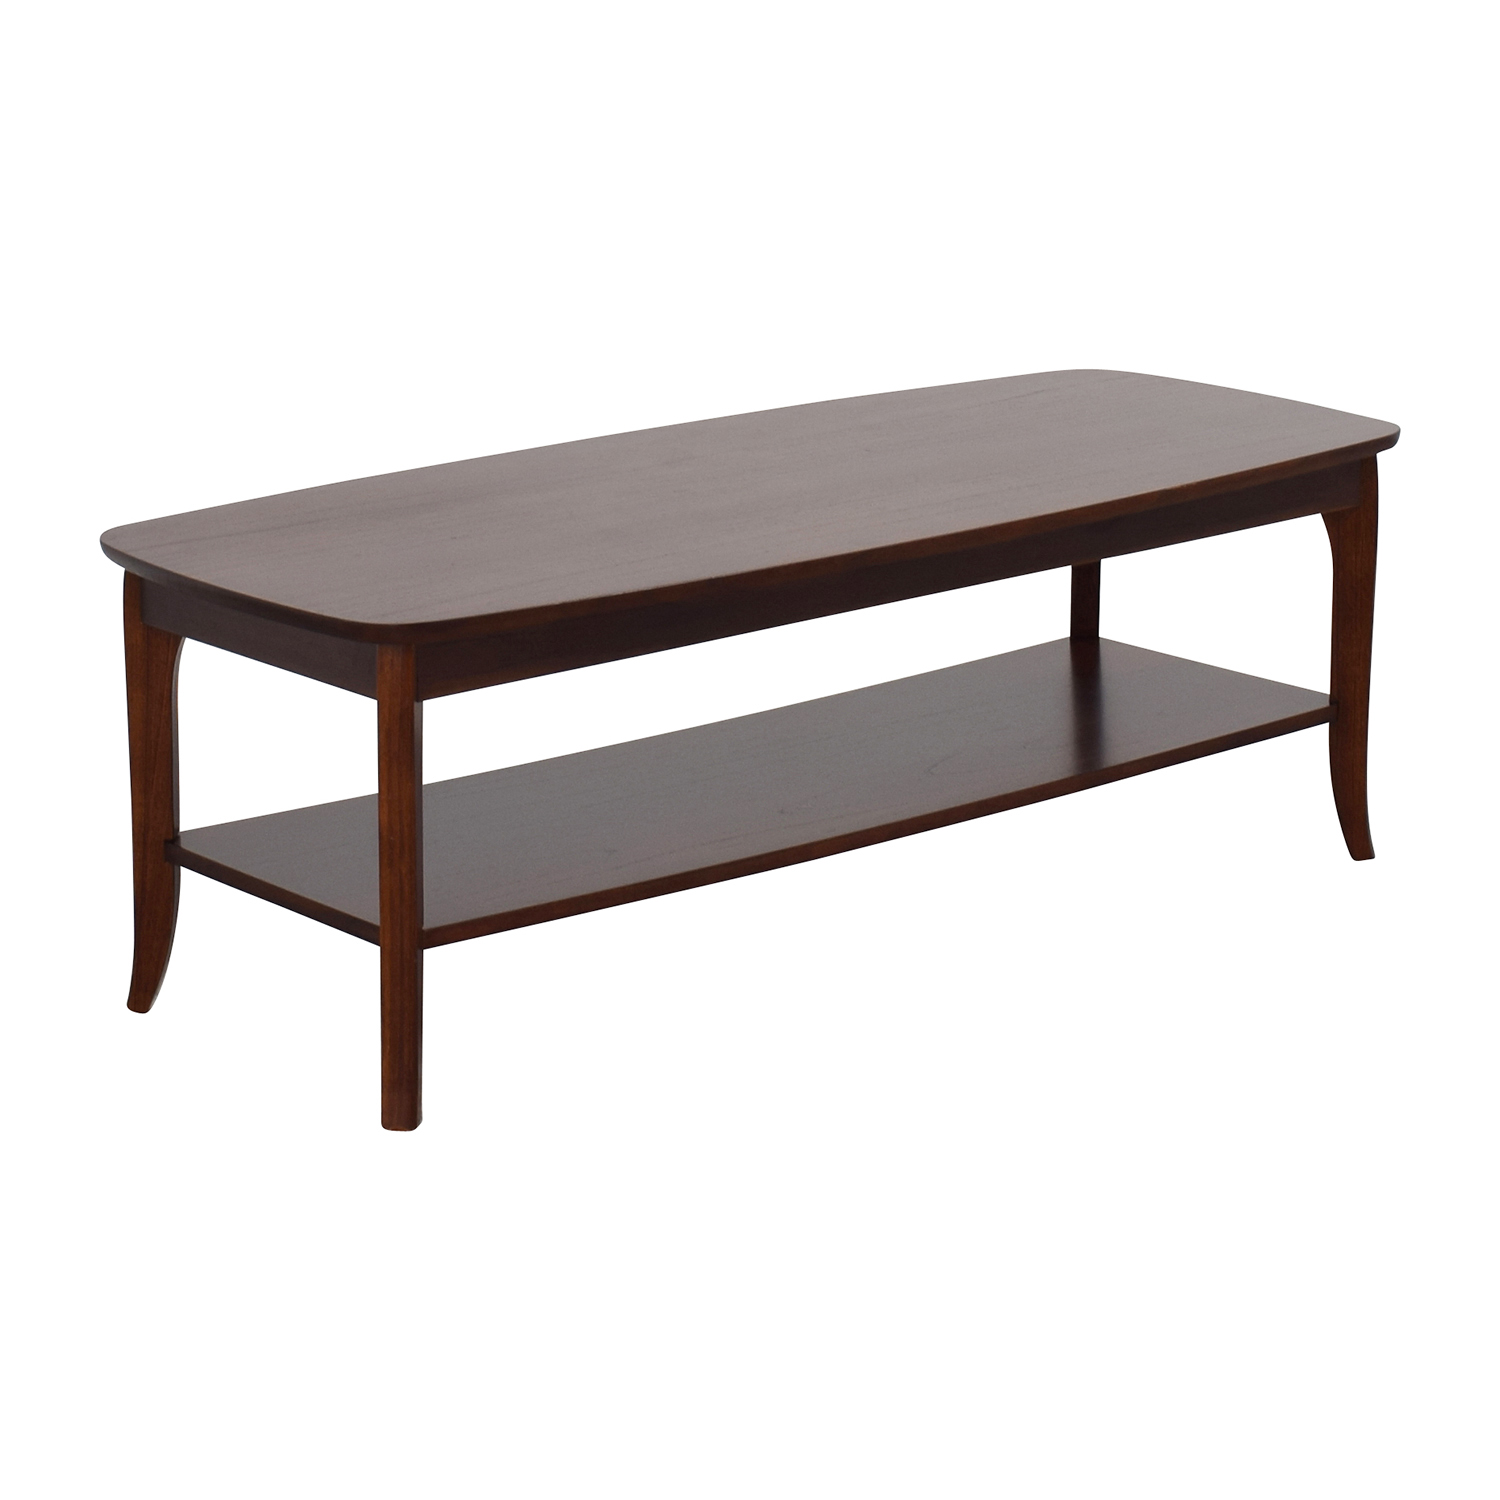 87 Off Pottery Barn Pottery Barn Rectangular Coffee Table Tables